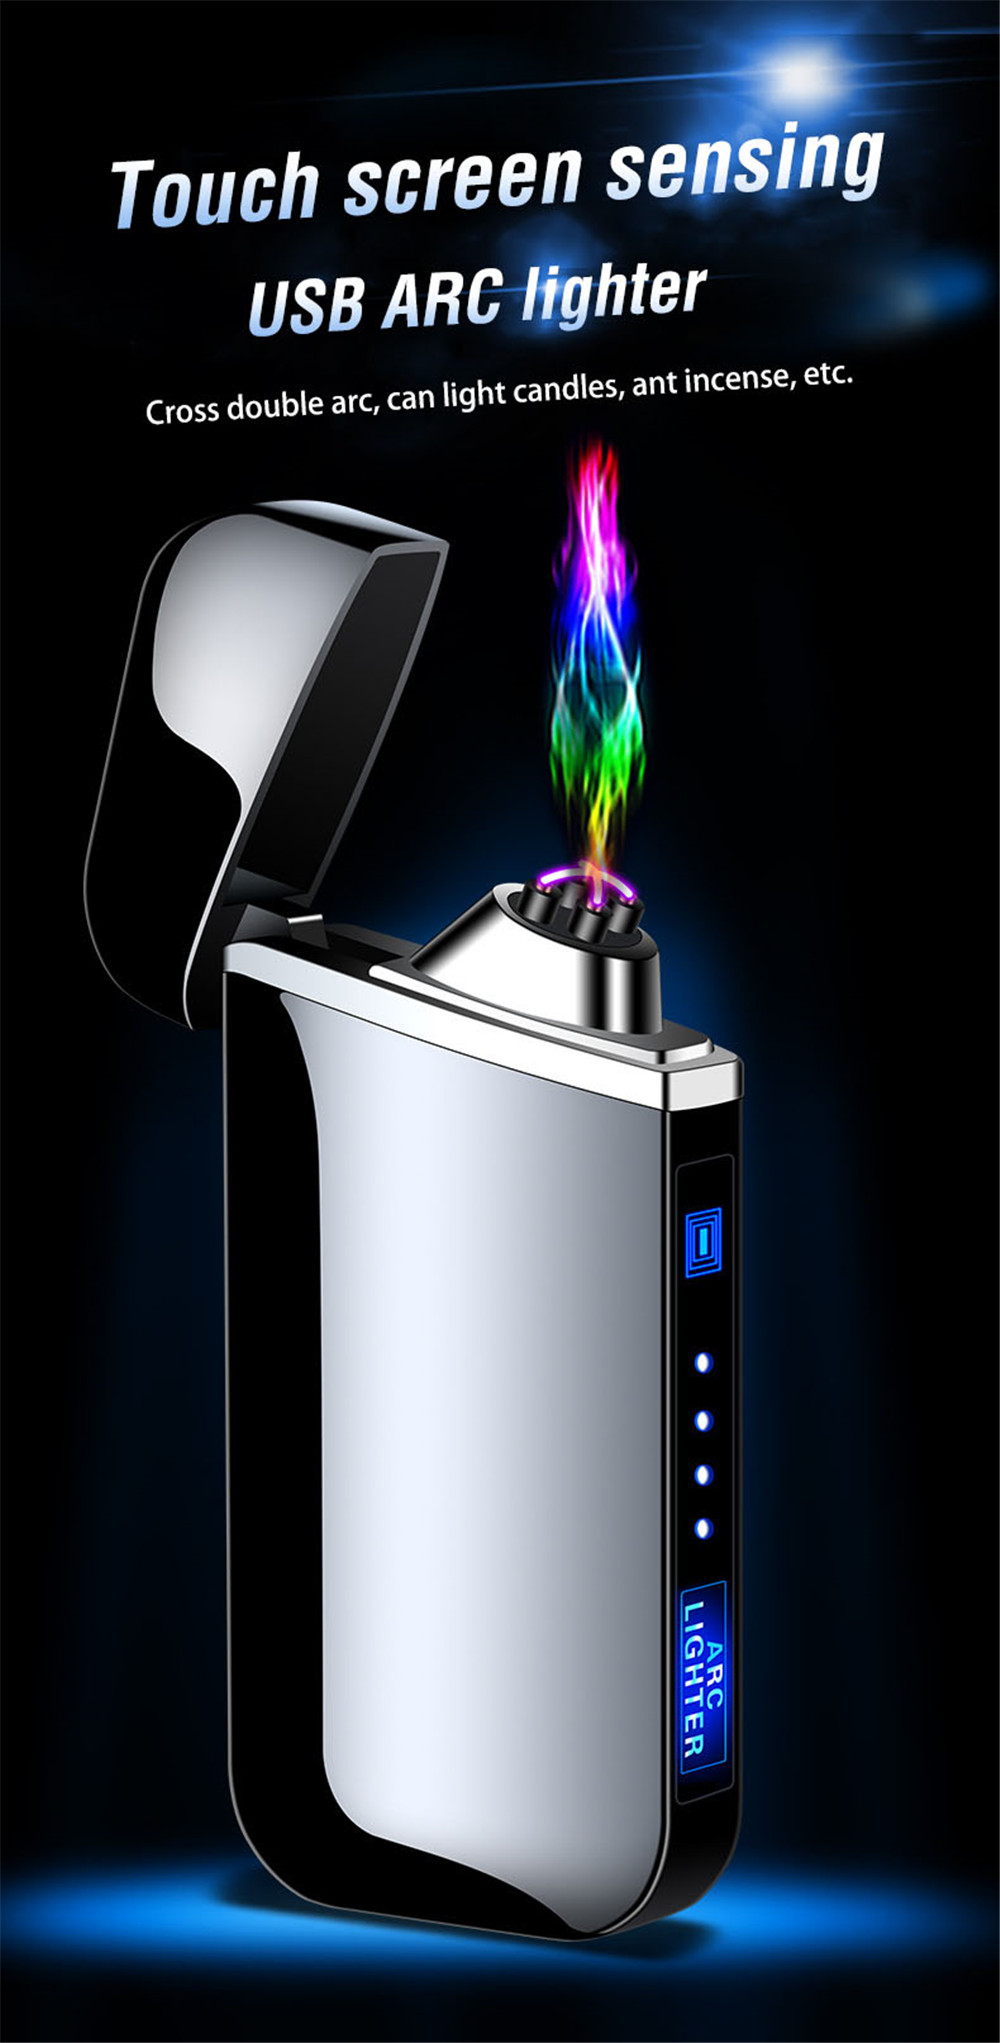 USB Arc Lighter